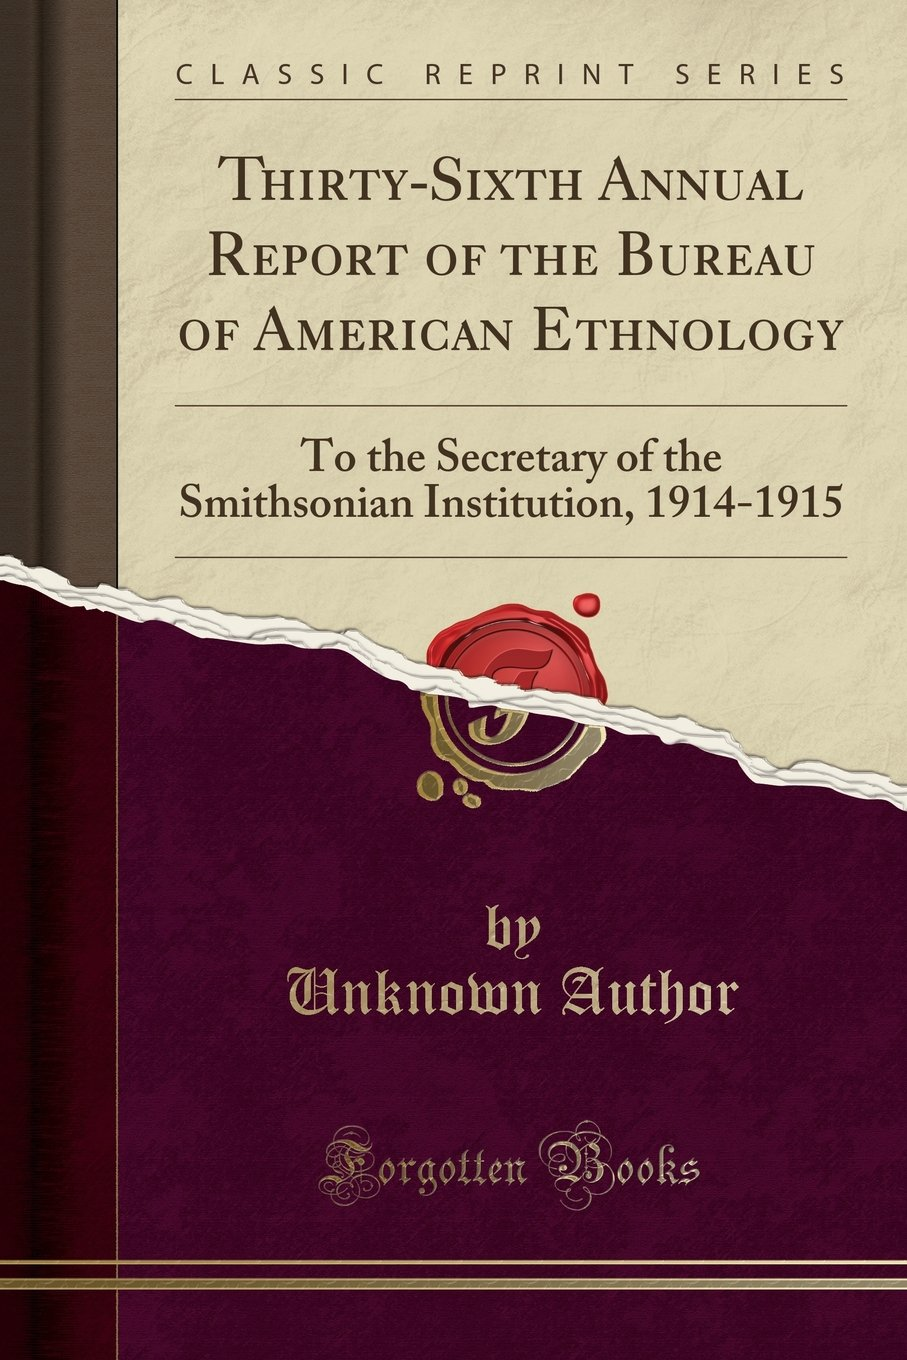 Read Online Thirty-Sixth Annual Report of the Bureau of American Ethnology: To the Secretary of the Smithsonian Institution, 1914-1915 (Classic Reprint) ebook